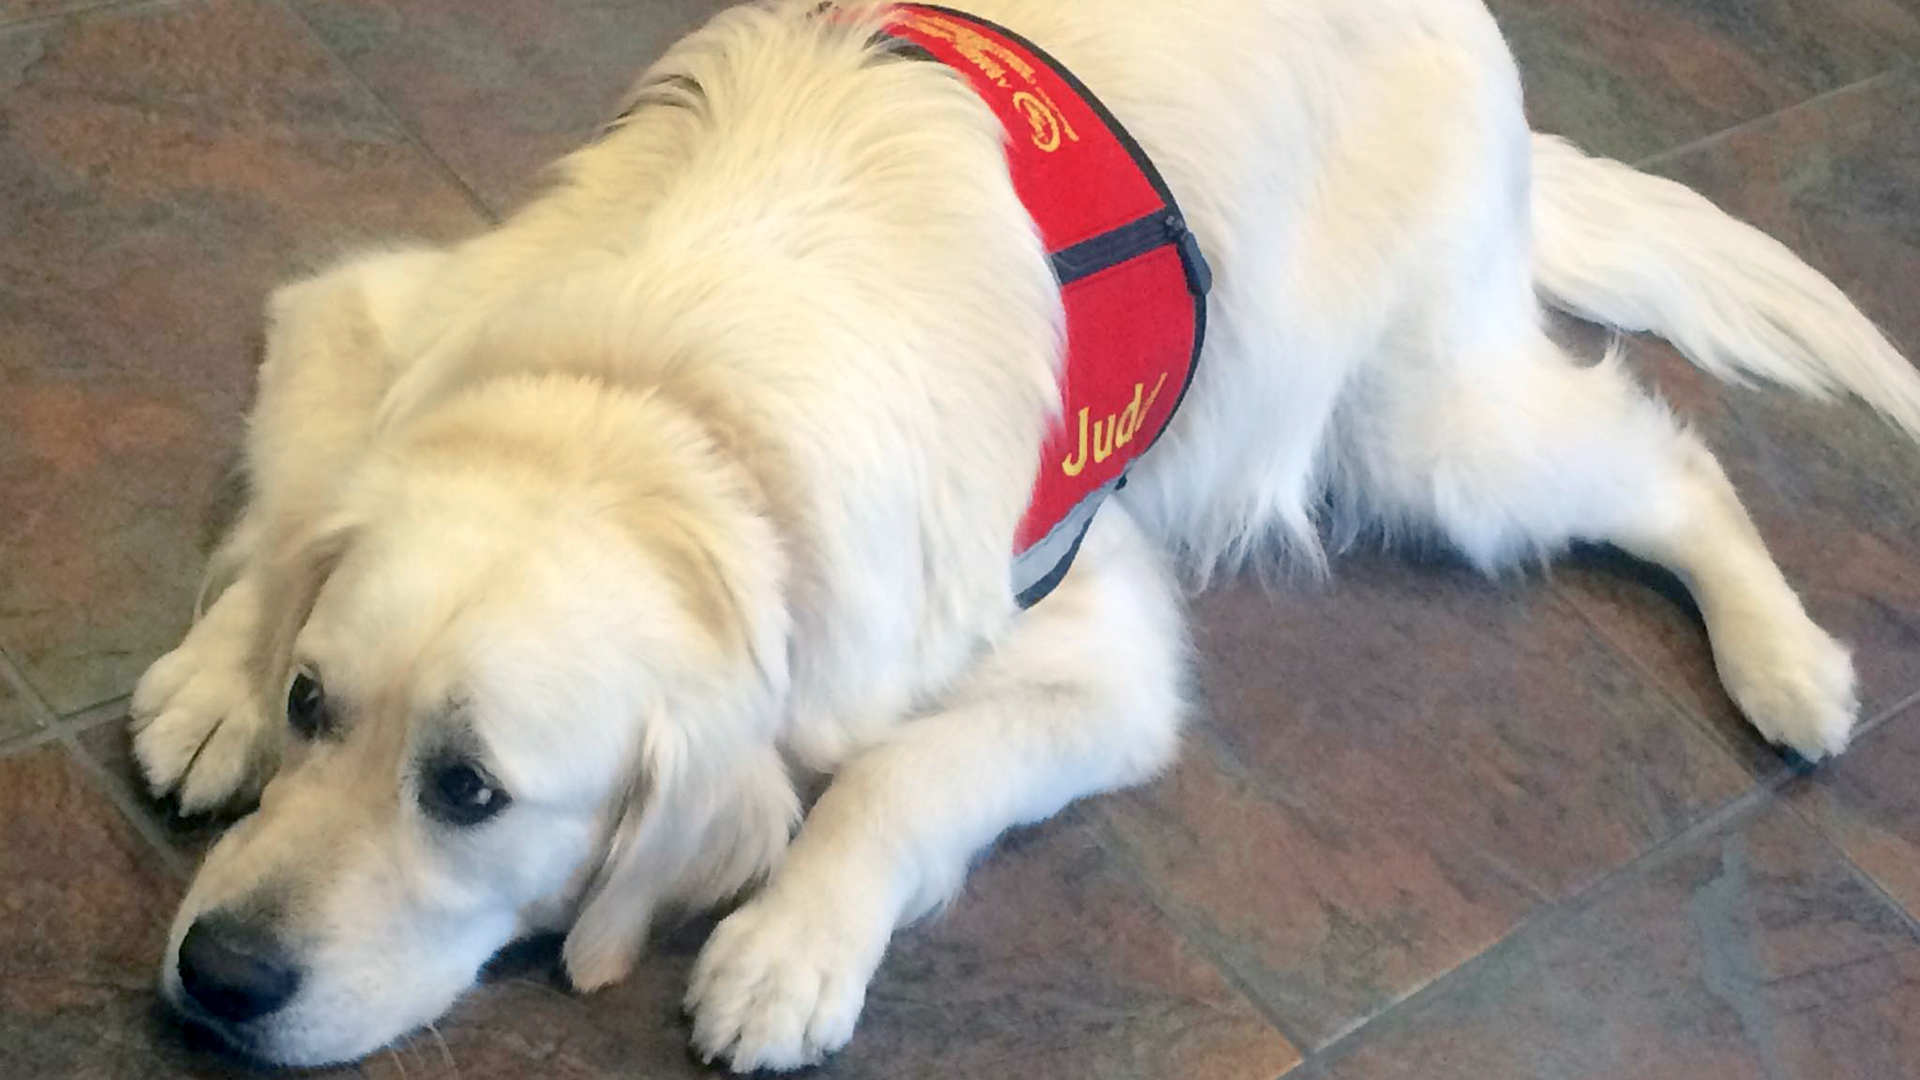 When humans grieve, more funeral homes are offering therapy dogs to help